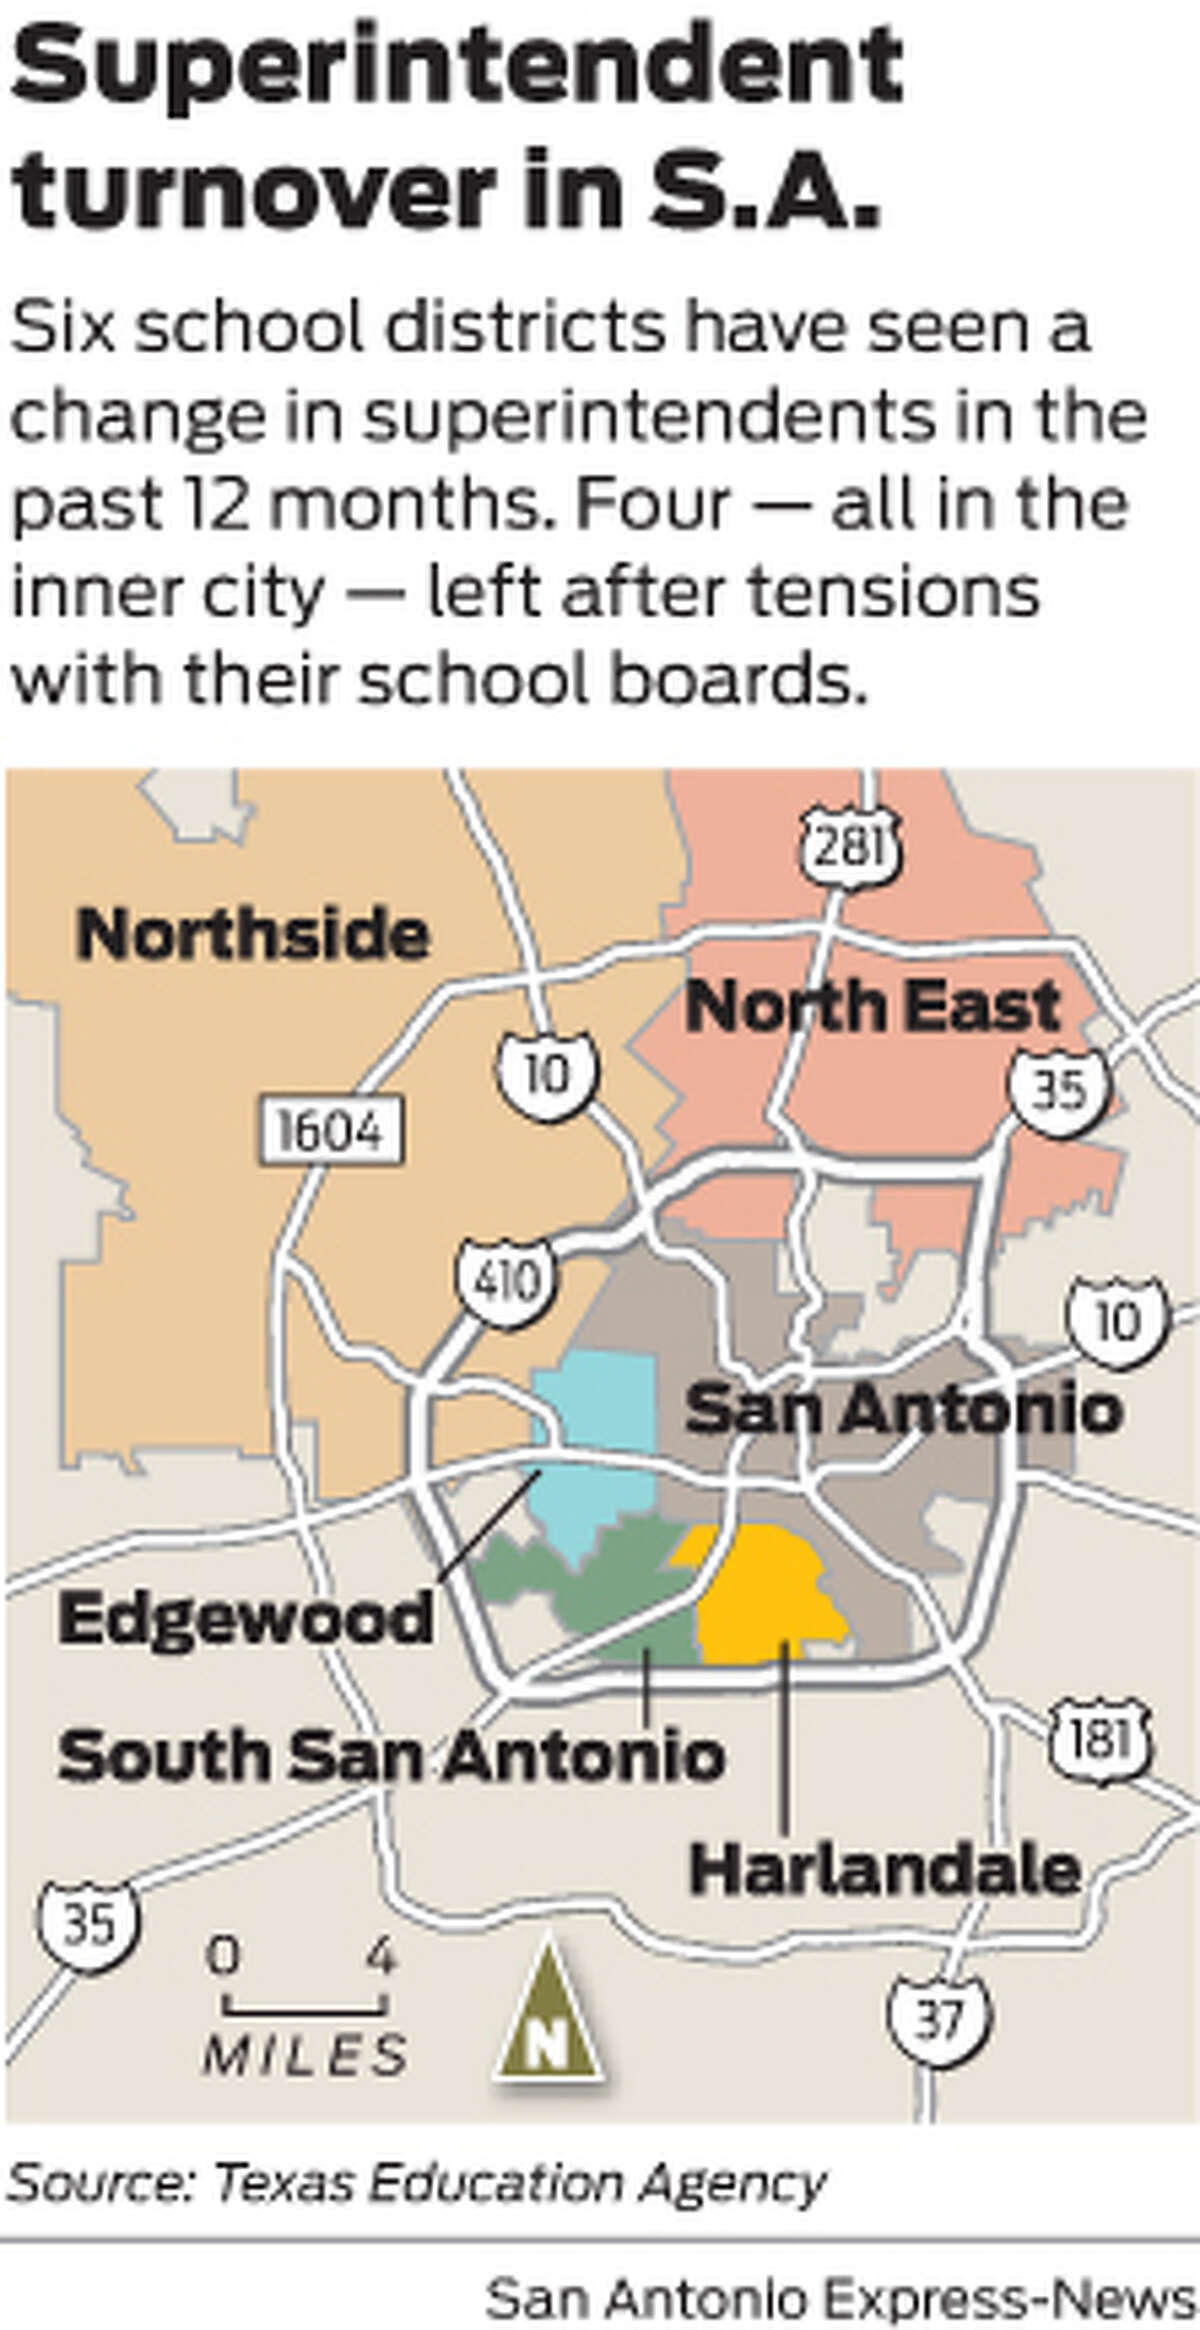 Six school districts have seen a change in superintendents in the past 12 months. Four - all in the inner city - left after tensions with their school boards.